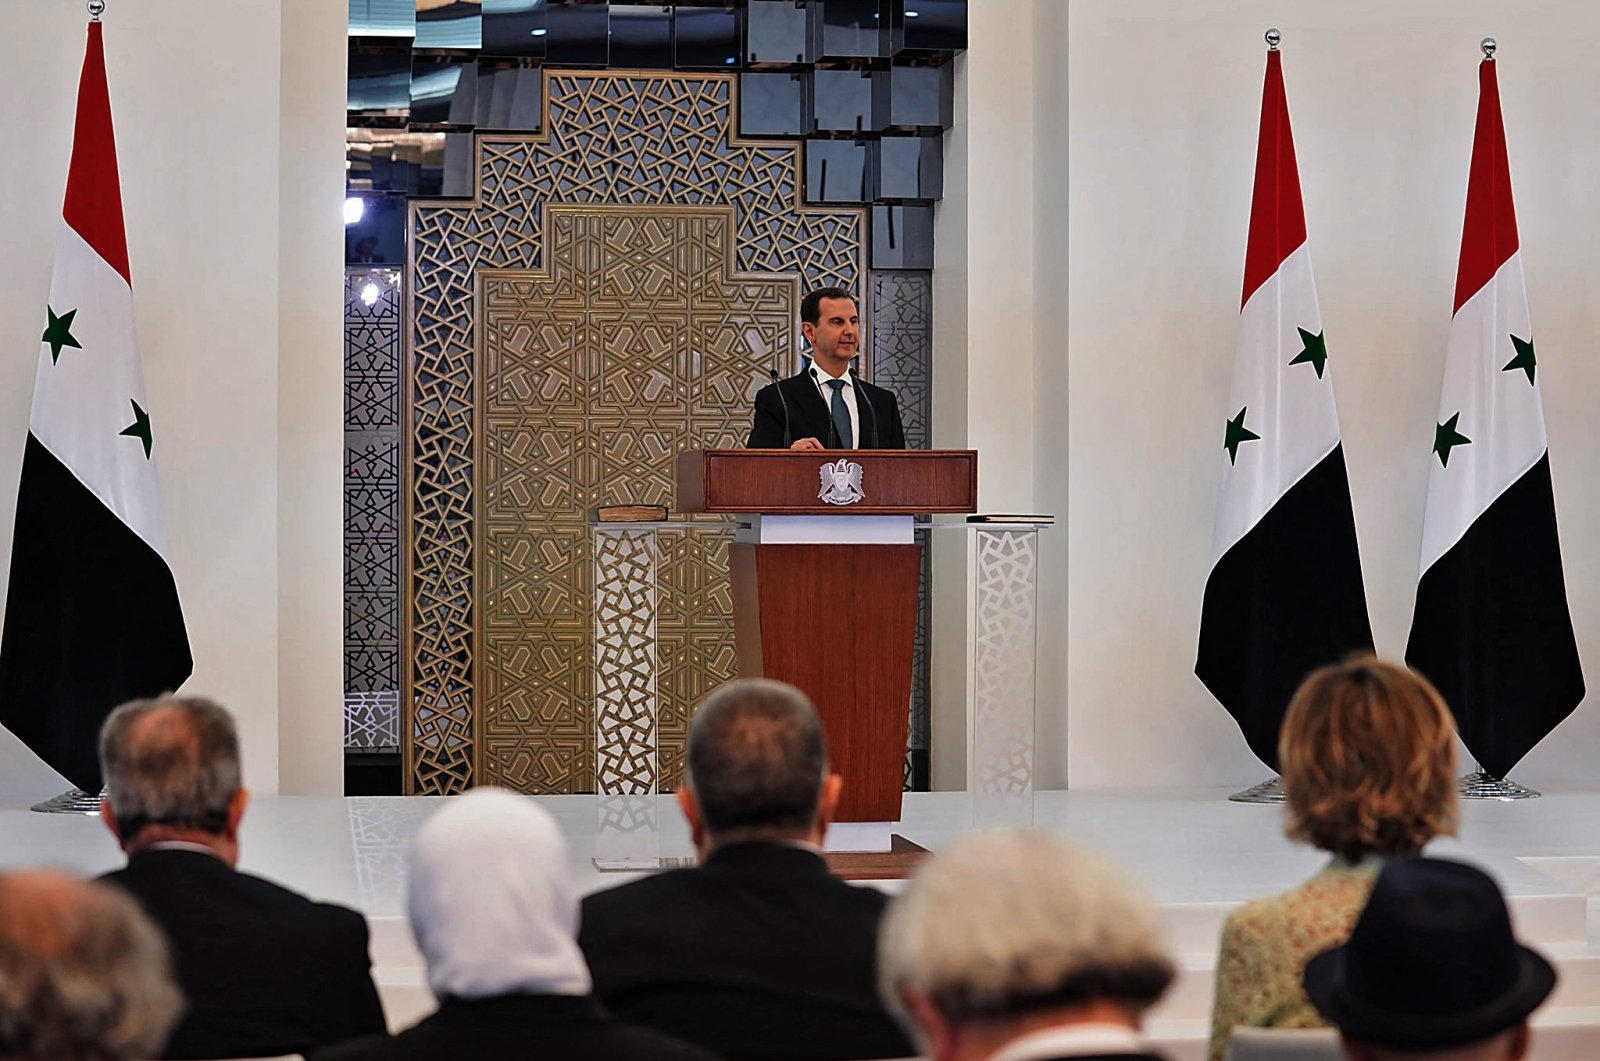 A handout picture released by the official Facebook page of the Syrian Presidency shows Bashar Assad delivering a speech at the swearing-in ceremony for his fourth term, in the capital Damascus, Syria, July 17, 2021. (AFP Photo)